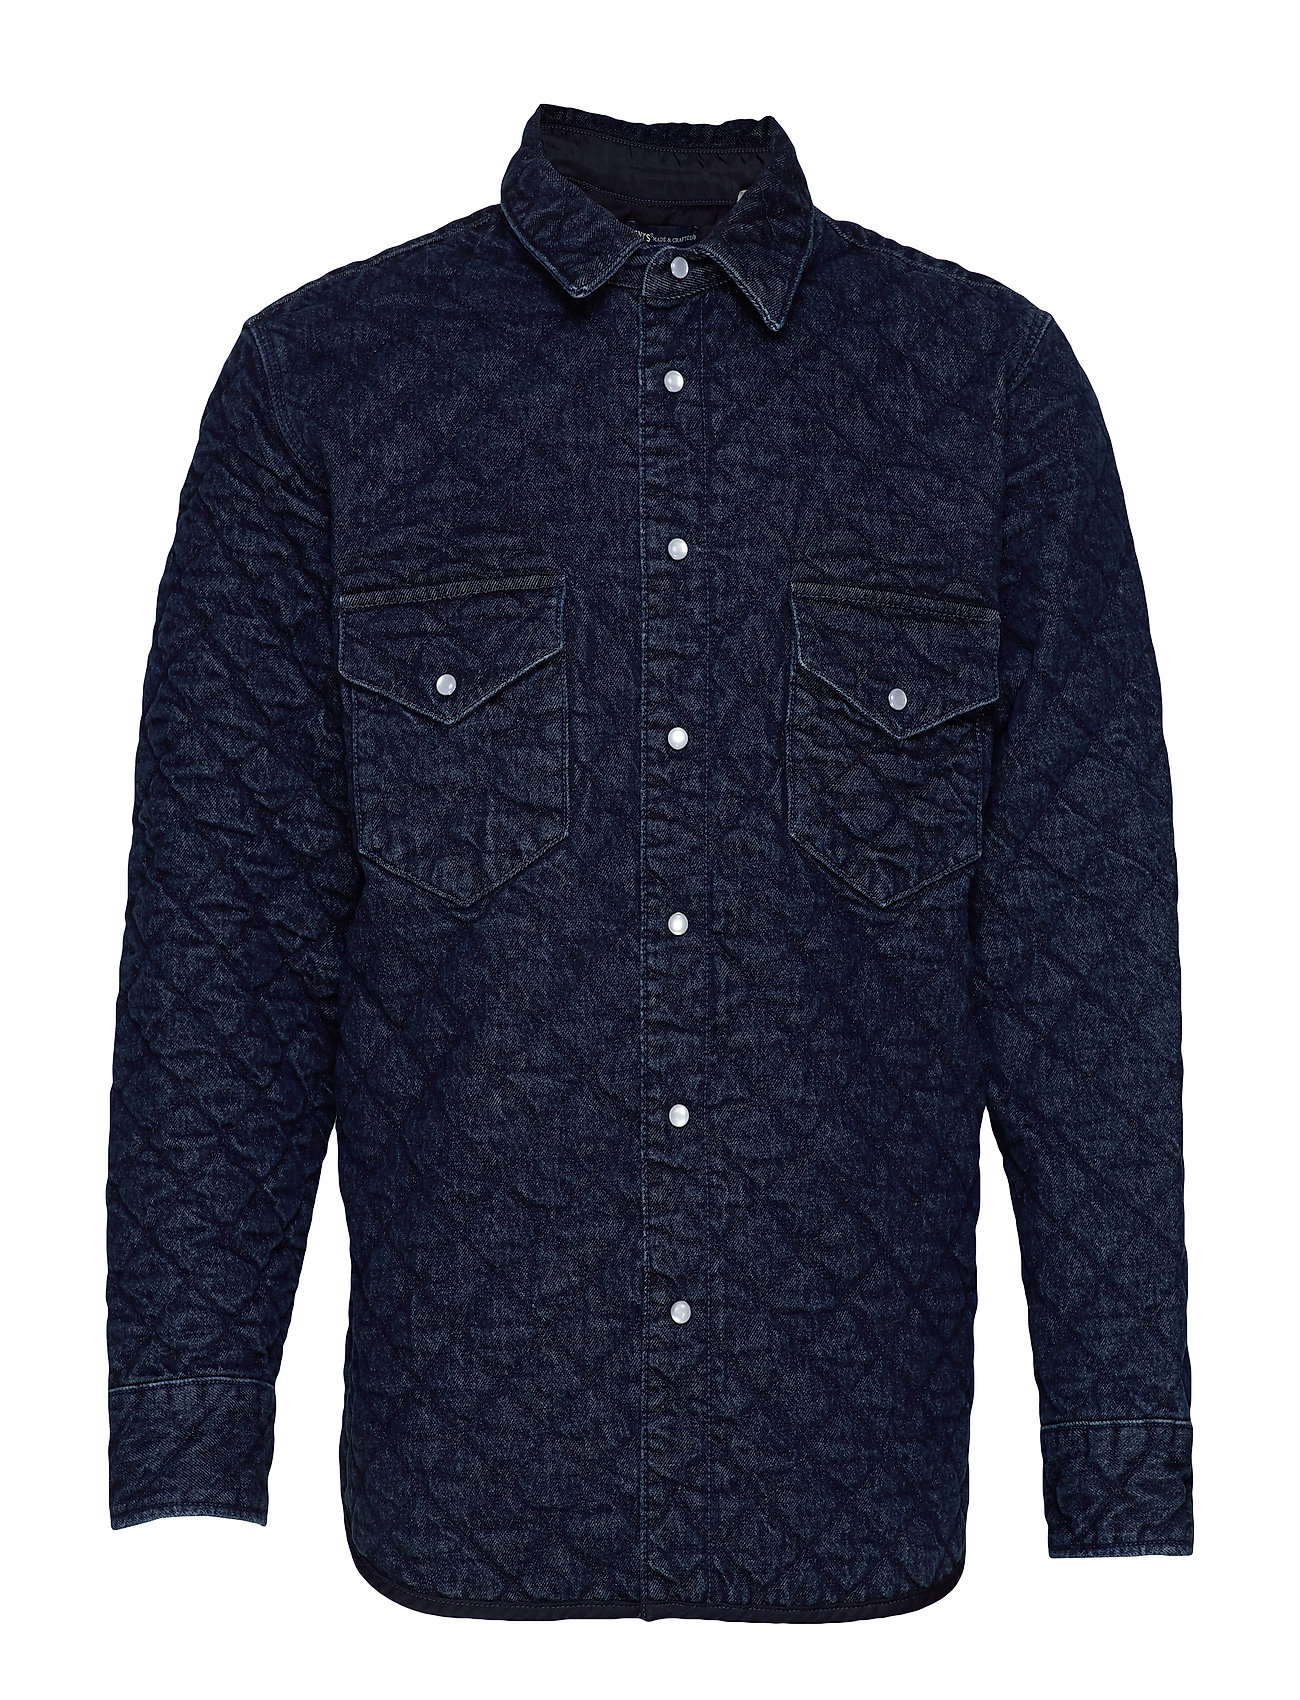 Levi's Made & Crafted LMC QUILTED WESTERN LMC OUTBAC - DARK INDIGO - FLAT FINISH